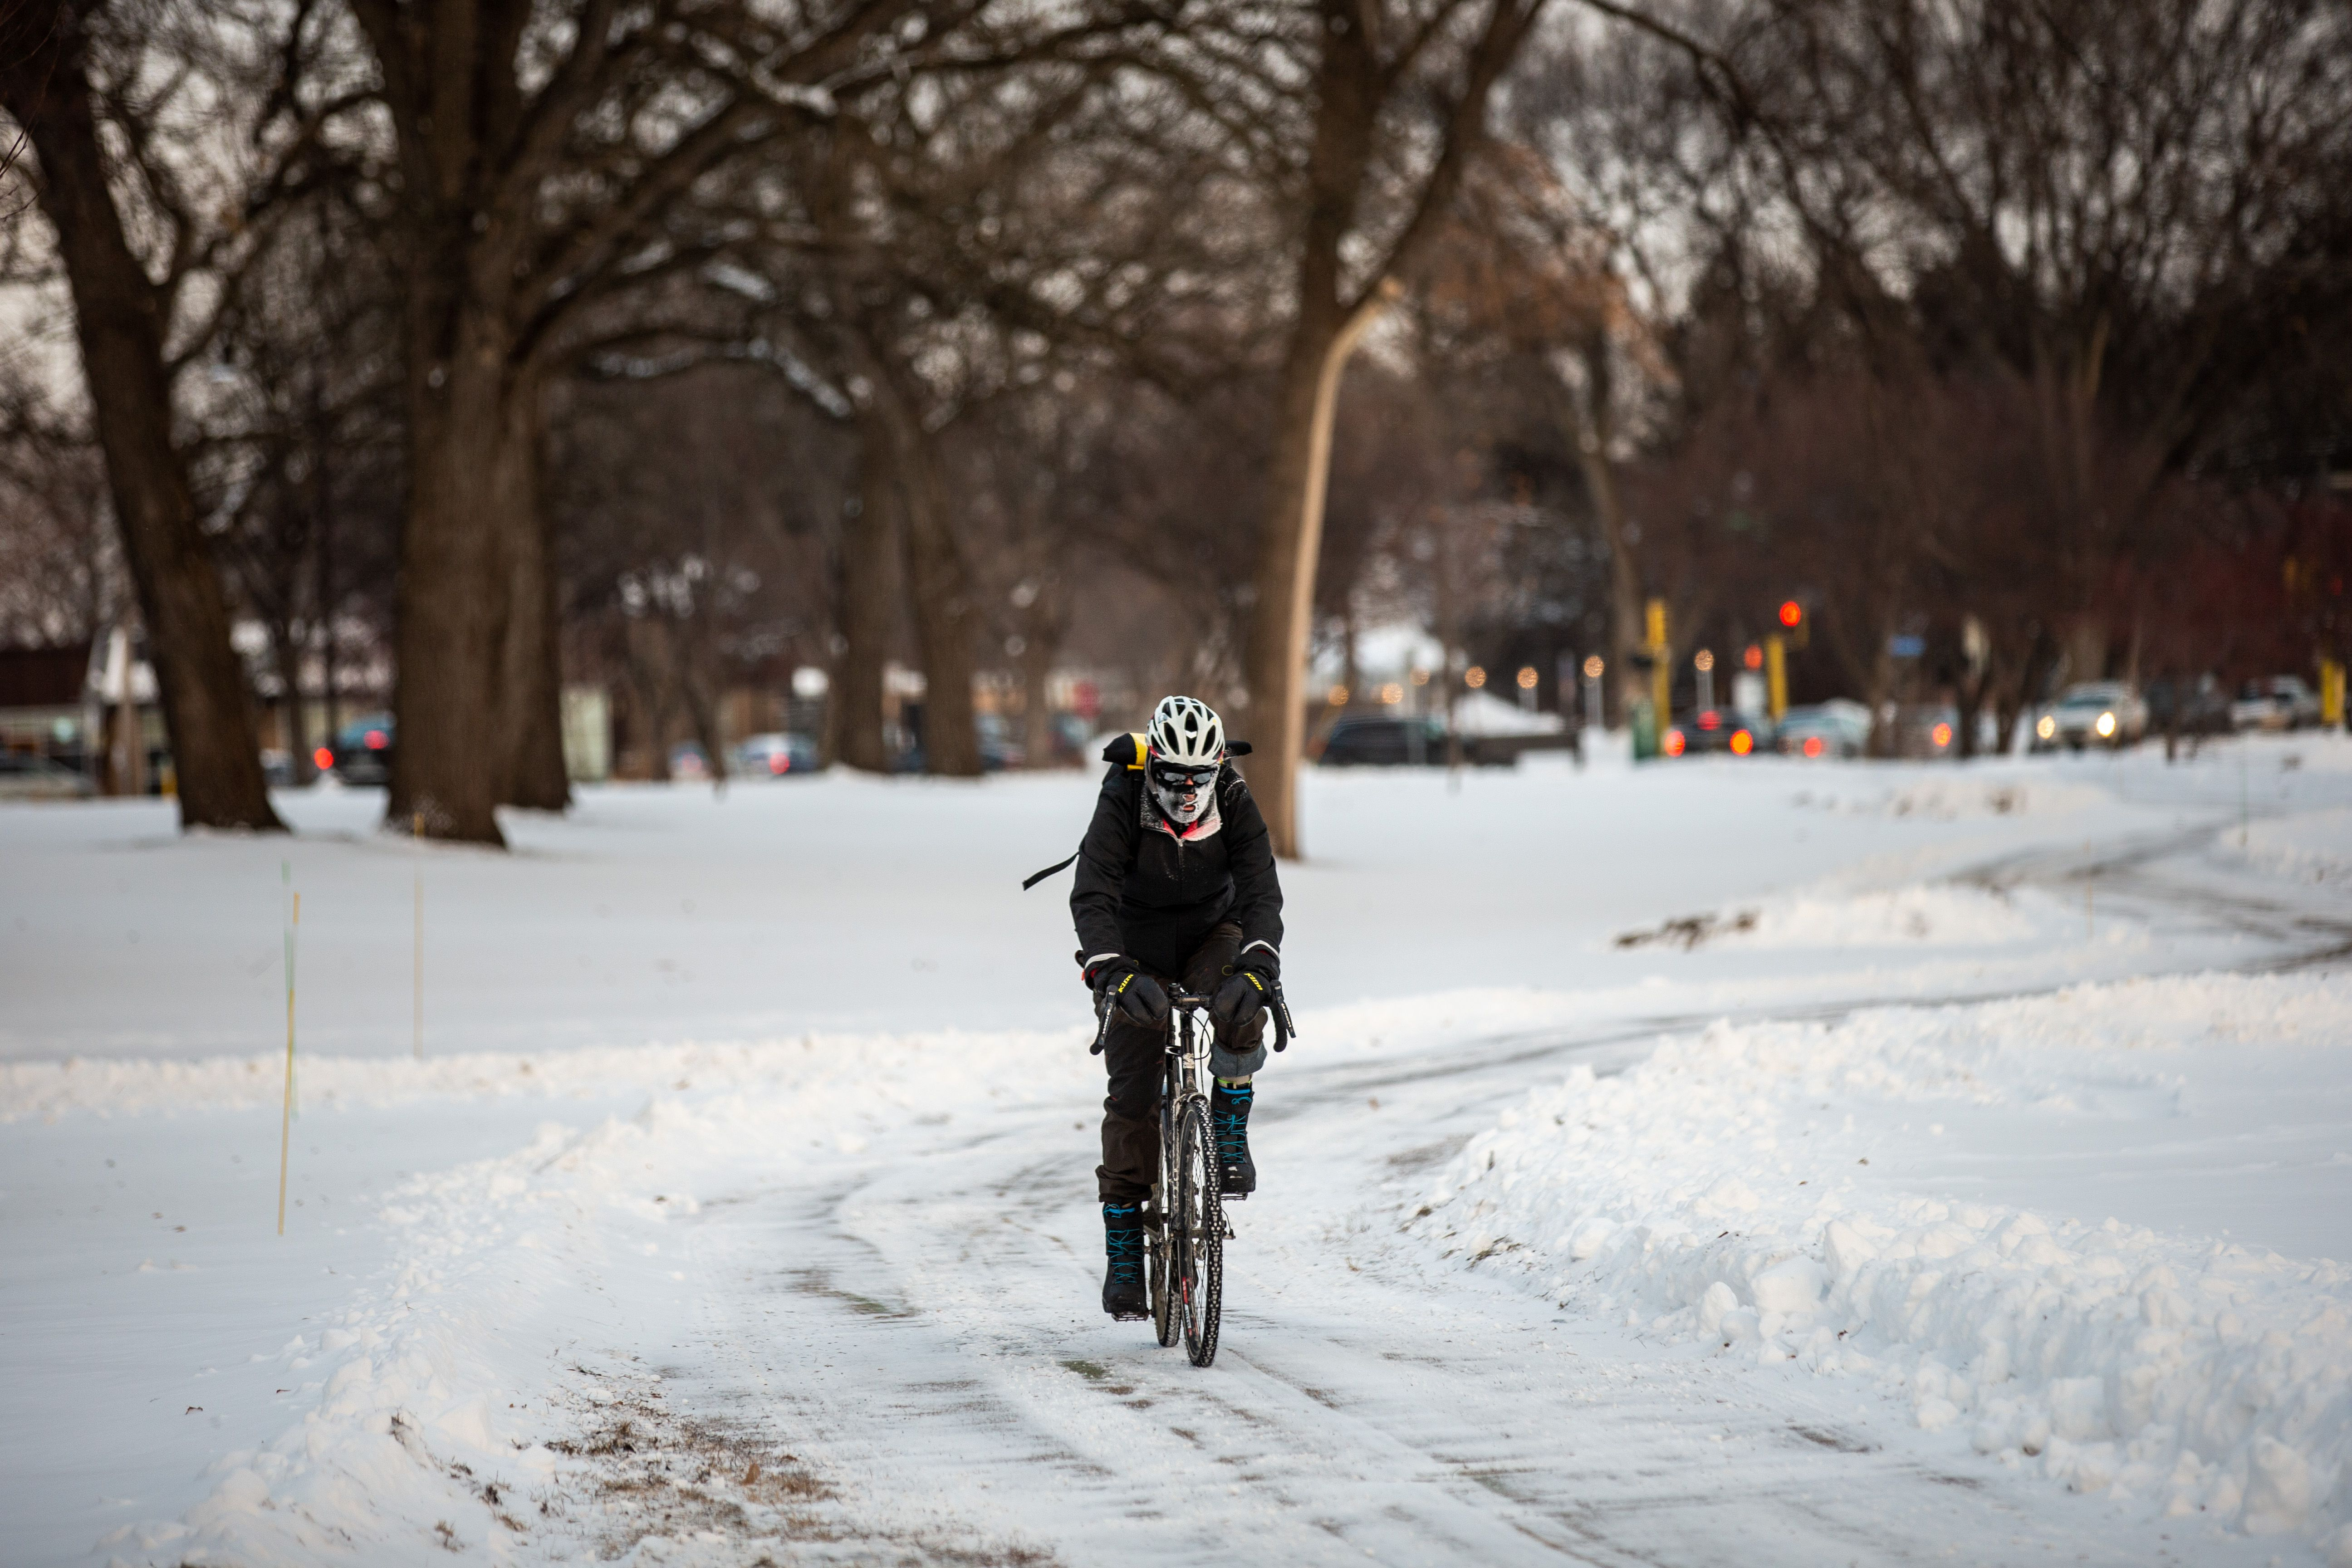 A bicyclist passes through heavy frost in Nokomis parkway, south west Minneapolis, as temperatures in the area dipped below freezing on Tuesday.